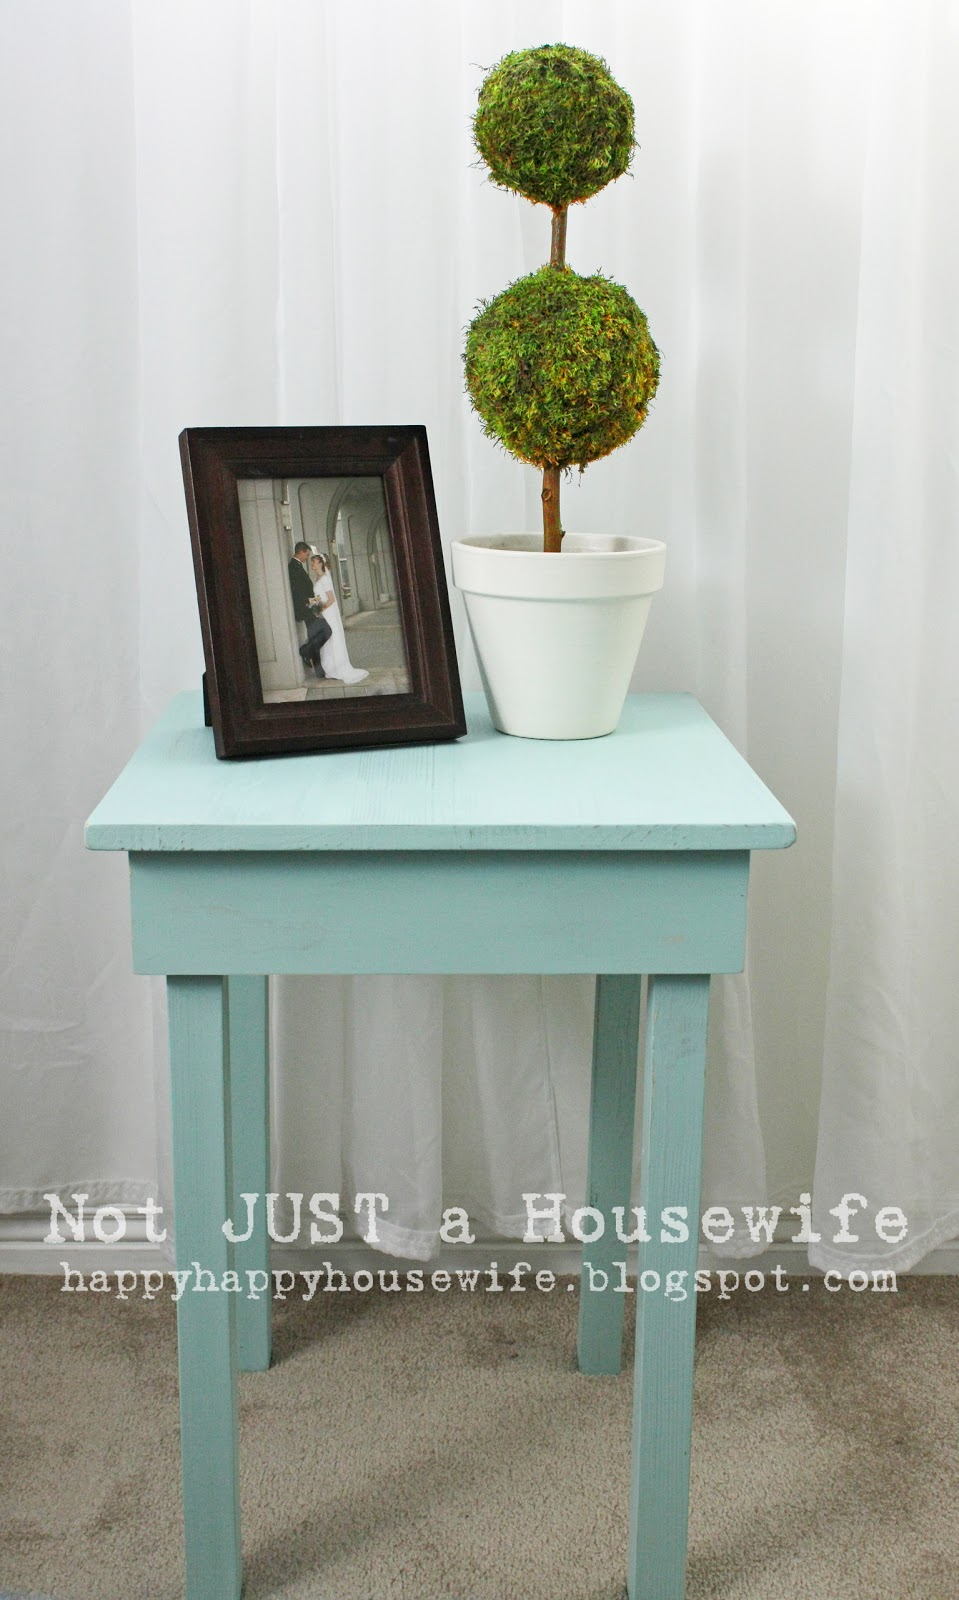 how to make a sofa table top leather images build simple side stacy risenmay i bought board that measured 18 by 36 then drew line down the middle so would have 2 tops measuring